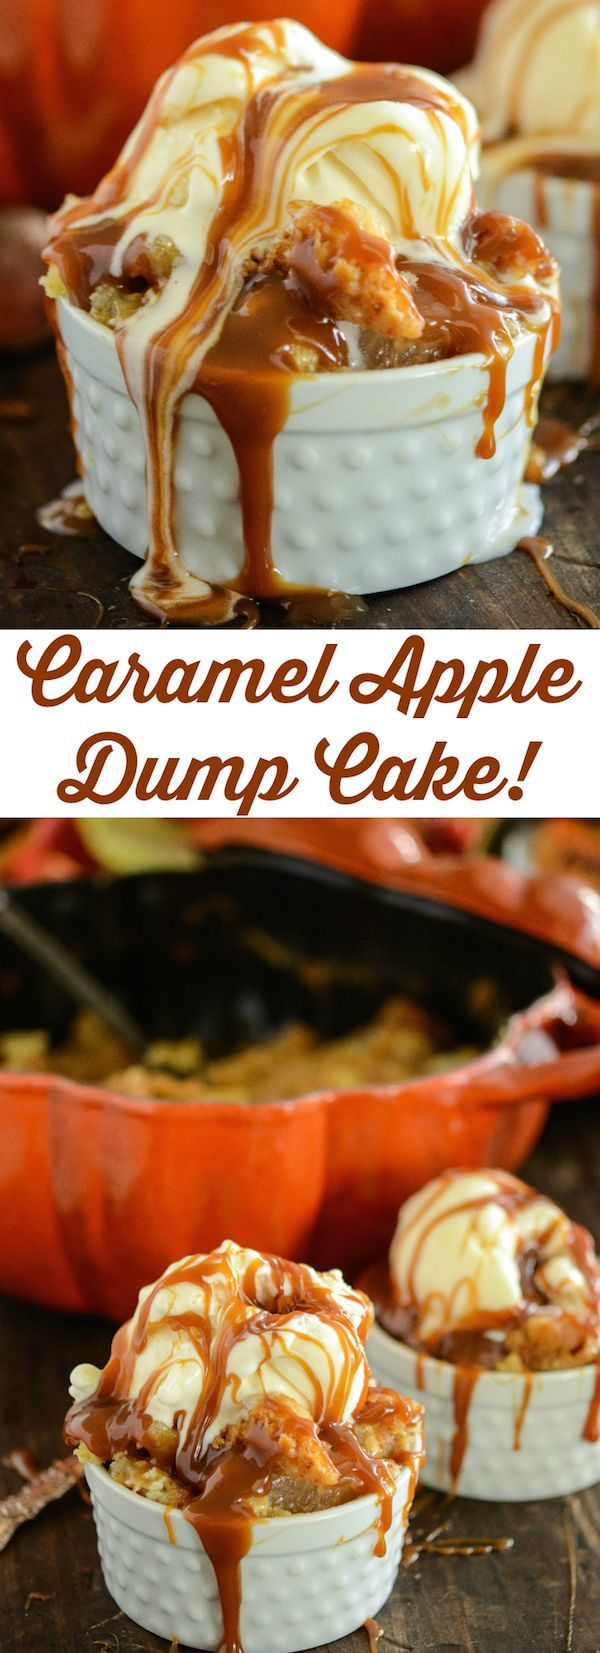 Apple Recipes: Caramel Apple Dump Cake - just a couple of easy ingredients and barely any work from you! This is always a huge crowd favorite with everyone asking for the recipe!